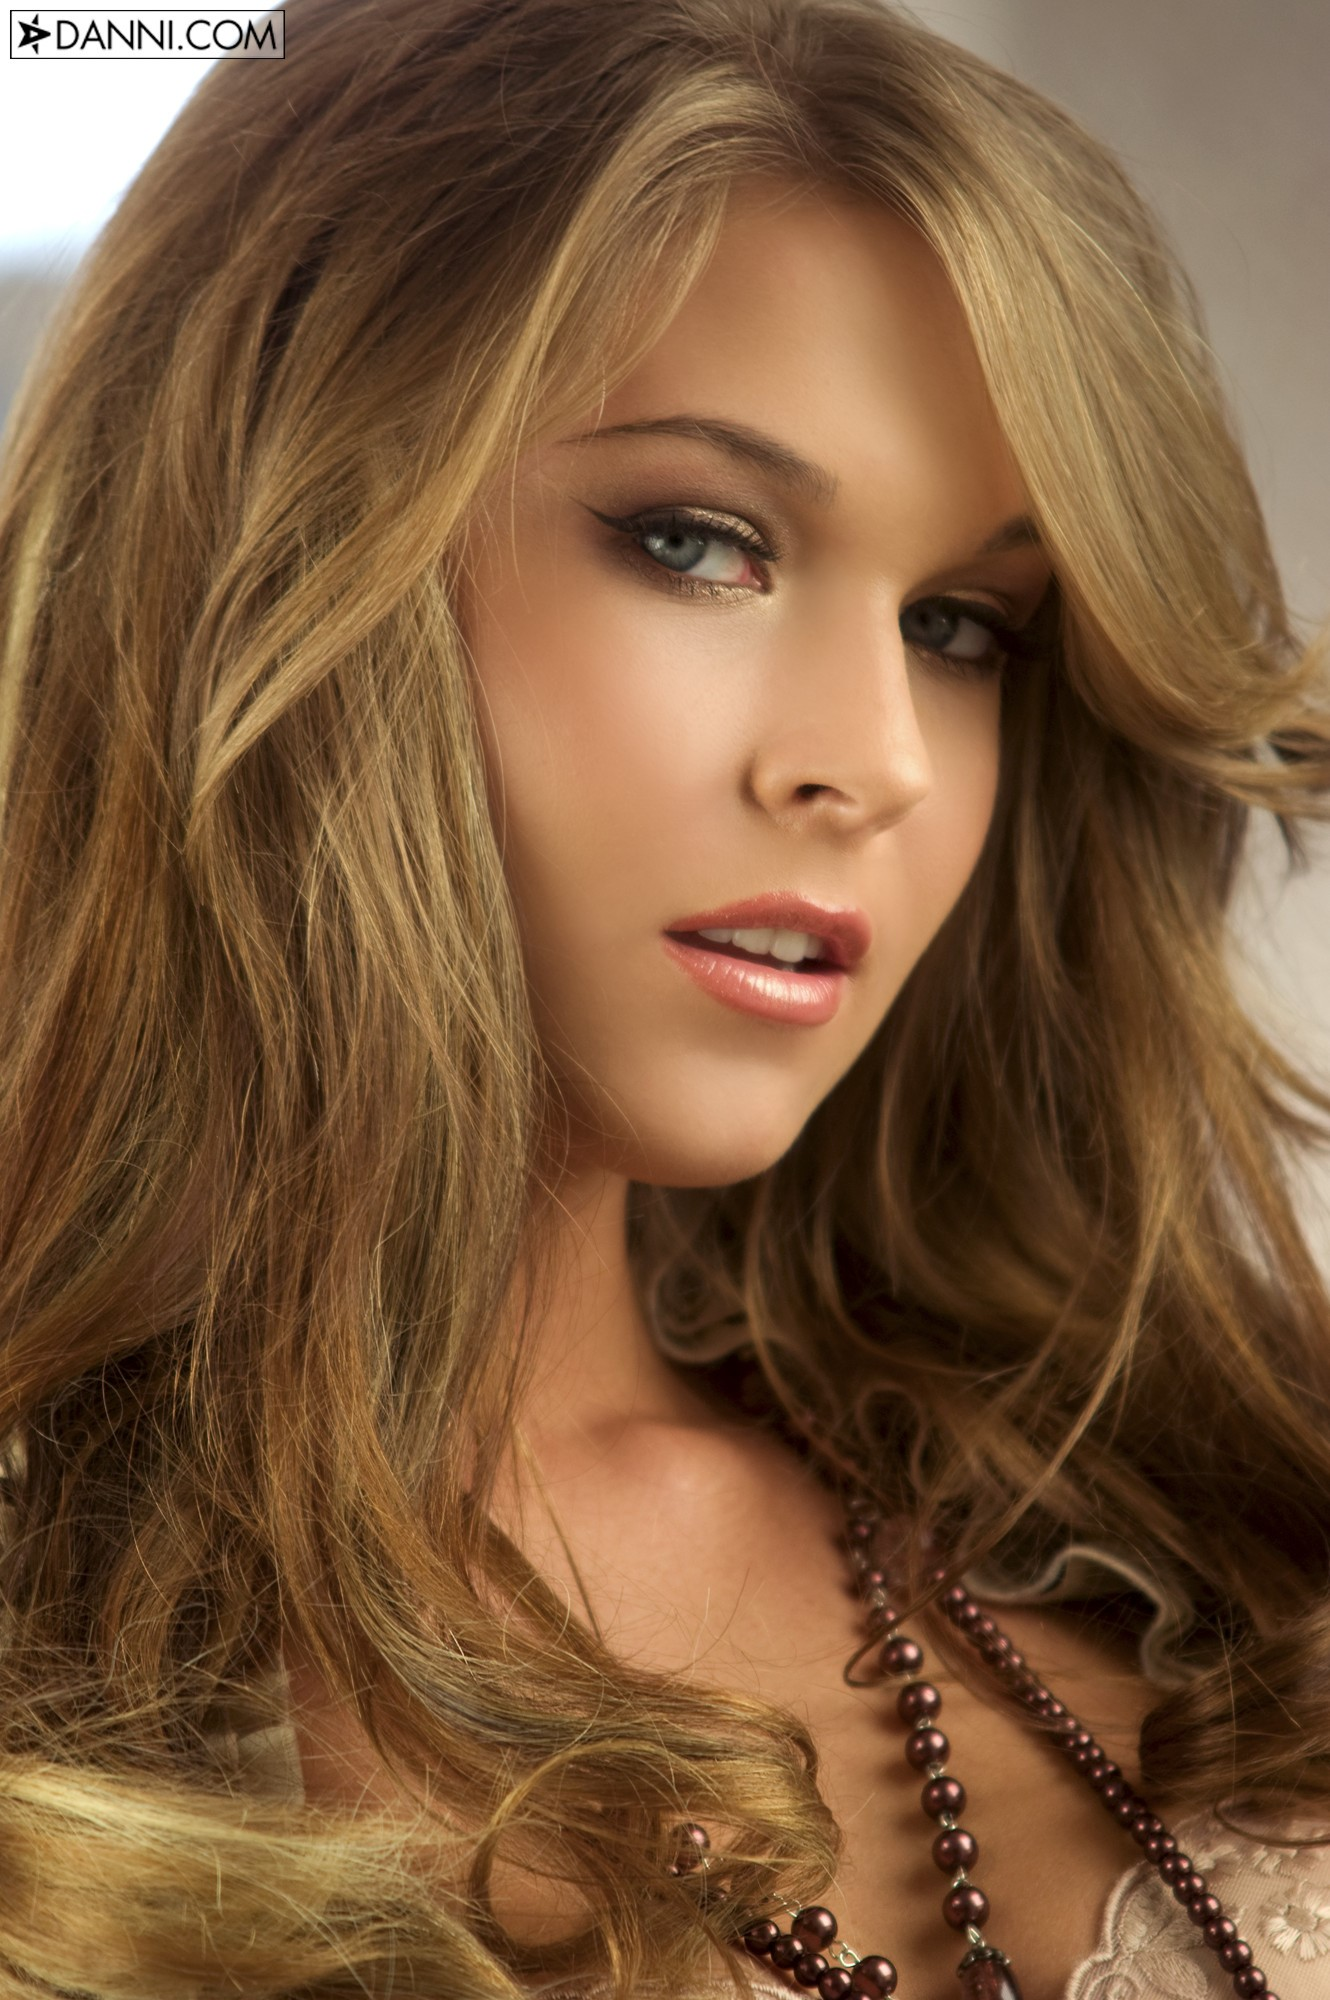 Adrienne Manning Pictures. Hotness Rating = 9.56/10